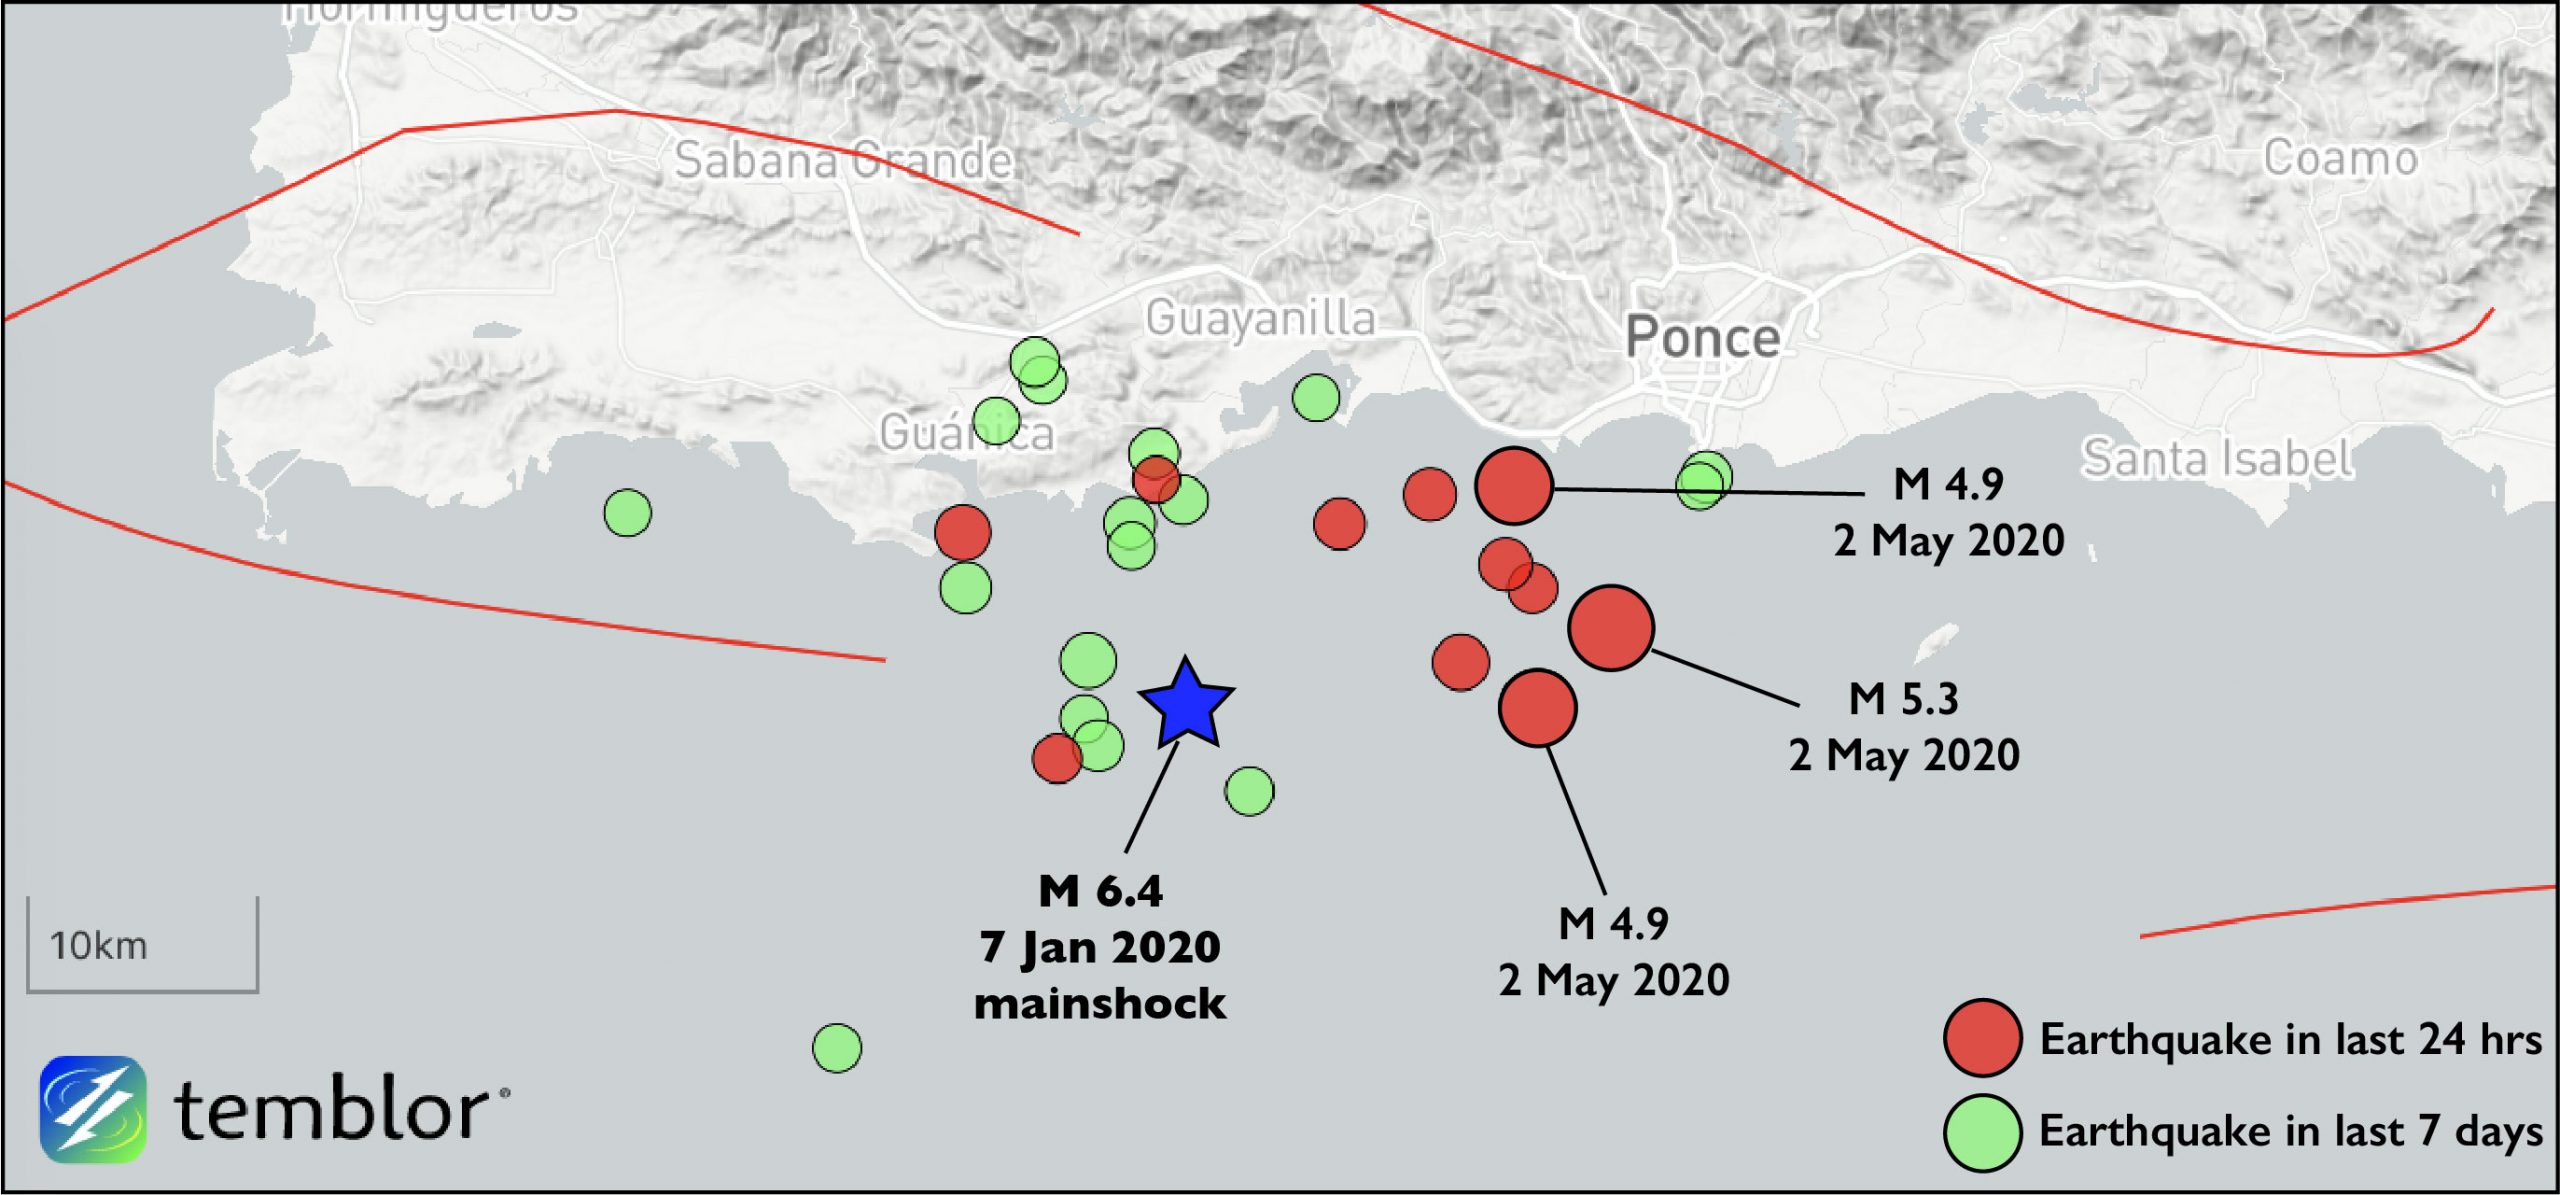 A series of M 4+ aftershocks struck this morning off shore of Puerto Rico, south of Ponce, with the largest being a M 5.3. These quakes follow the M 6.4 mainshock on January 7, 2020.